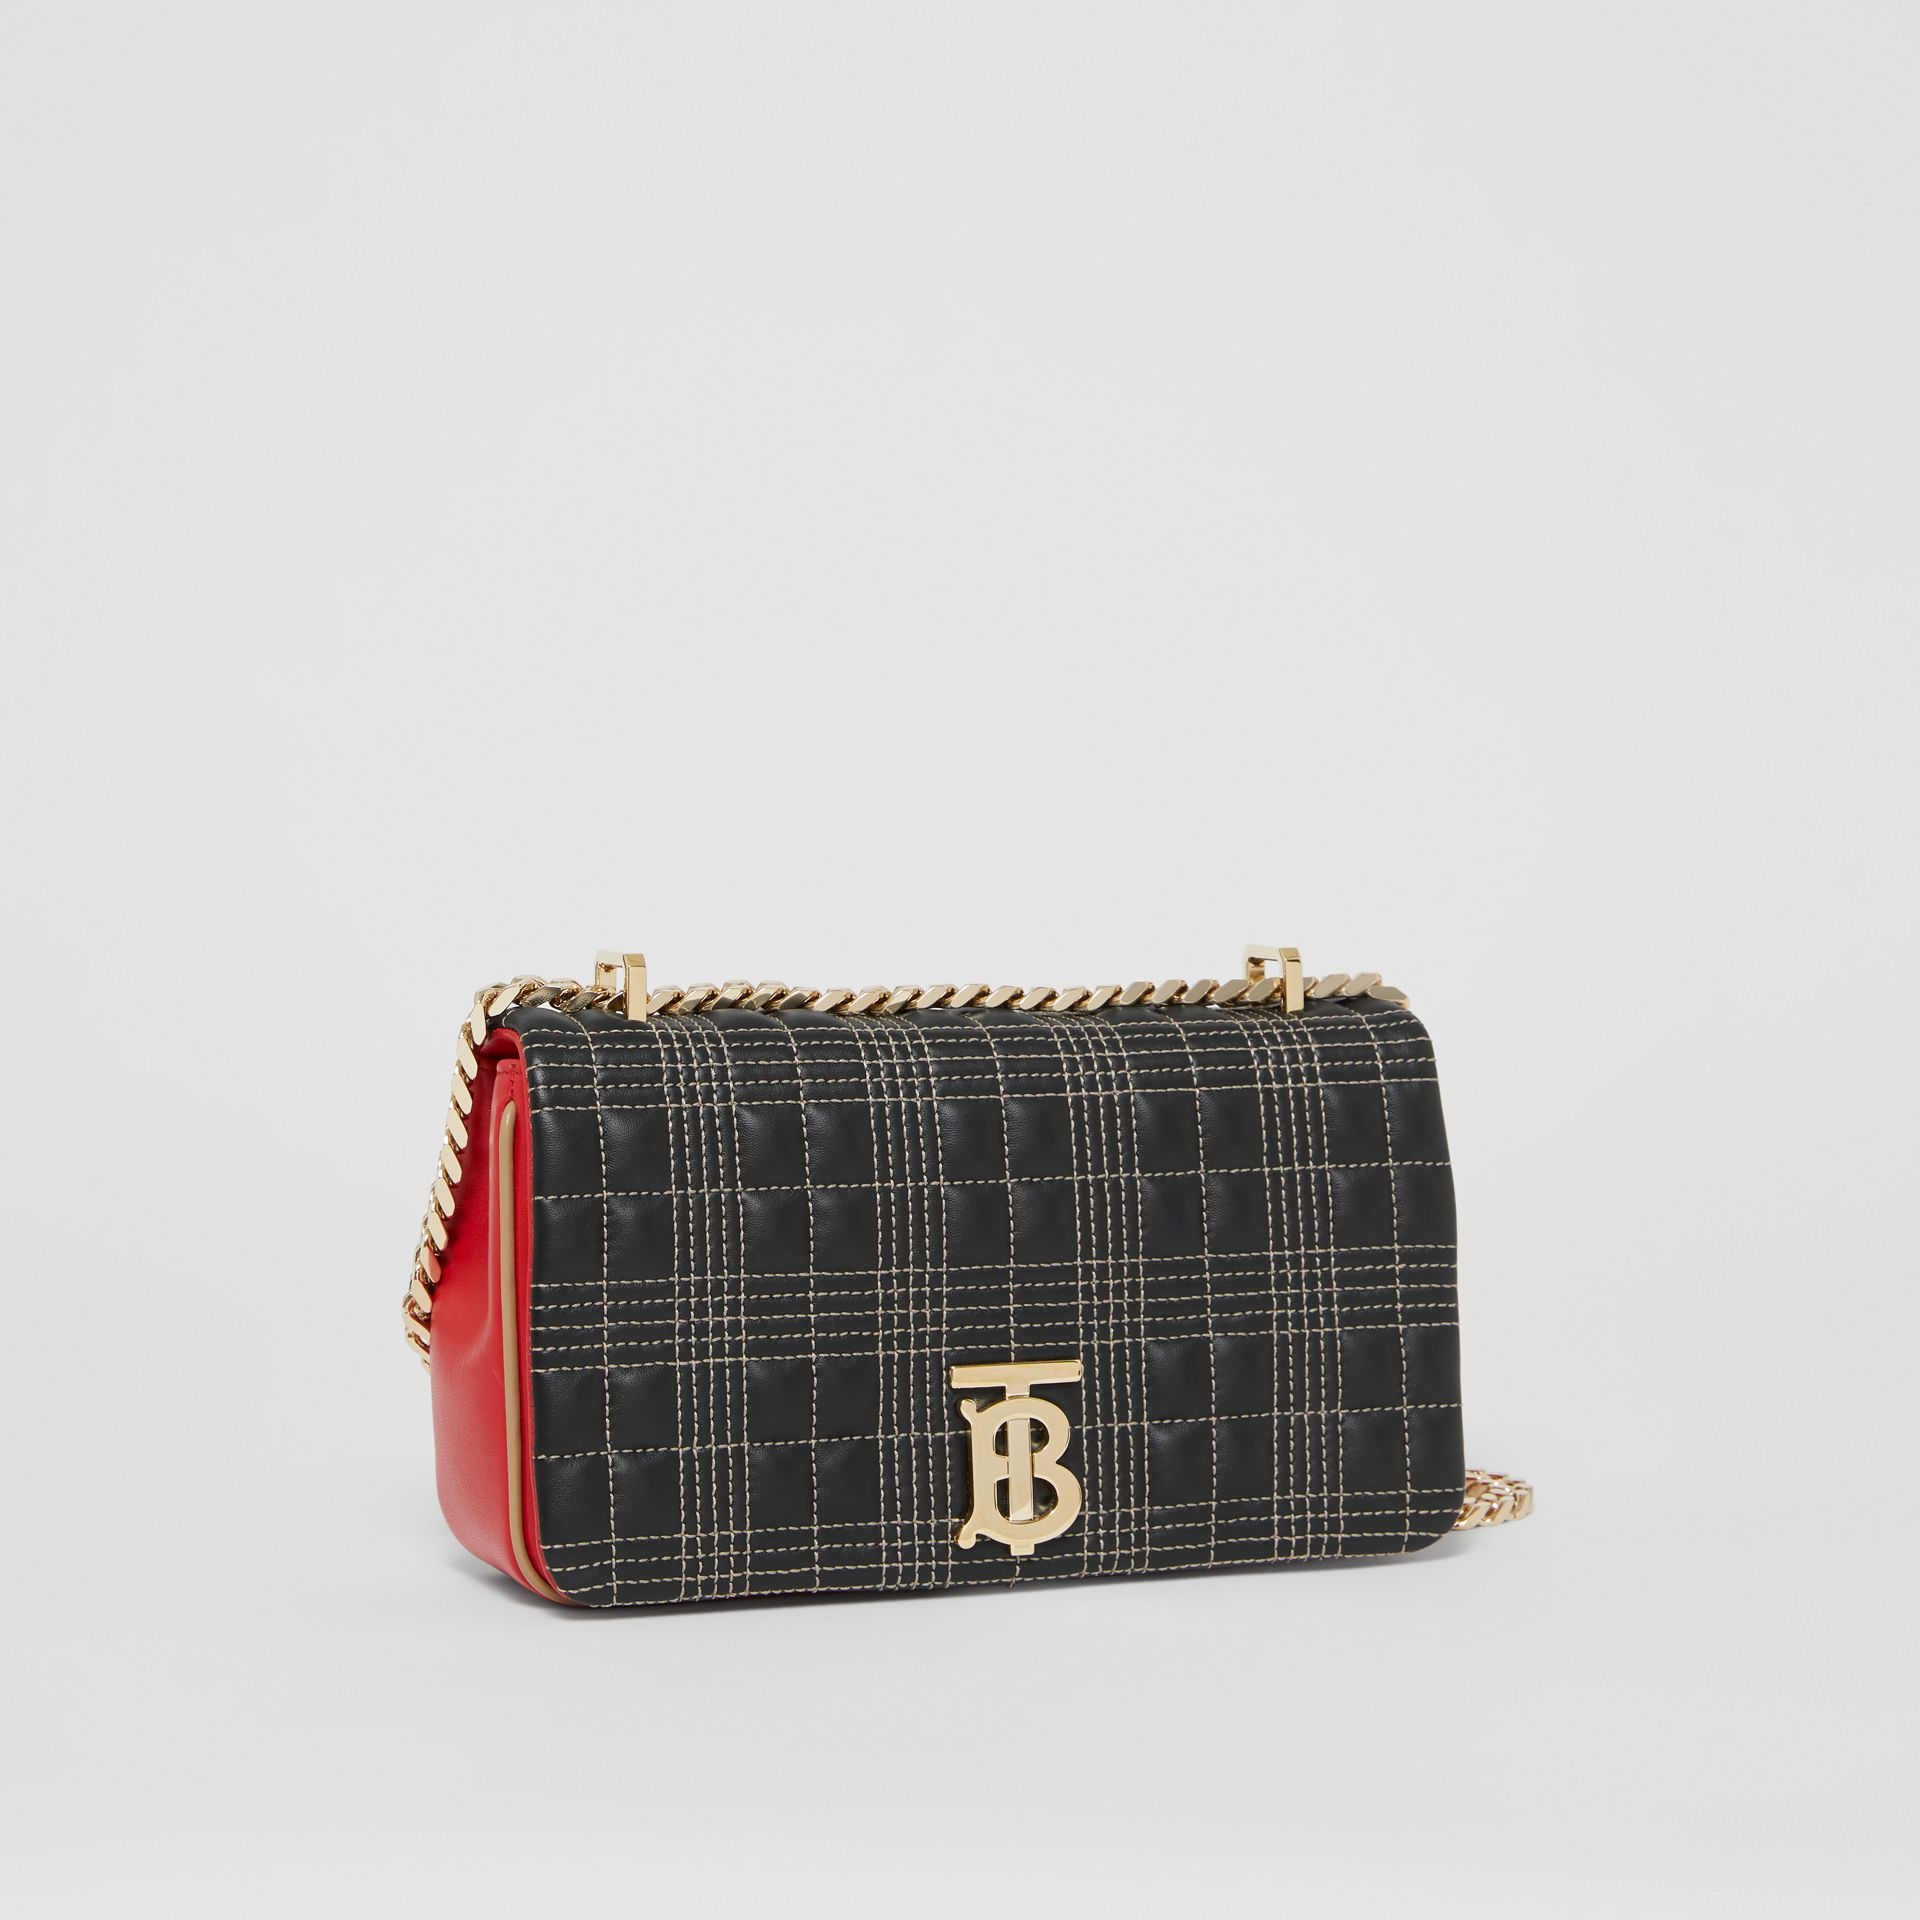 Small Quilted Tri-tone Lambskin Lola Bag in Black/bright Red - Women | Burberry - gallery image 6